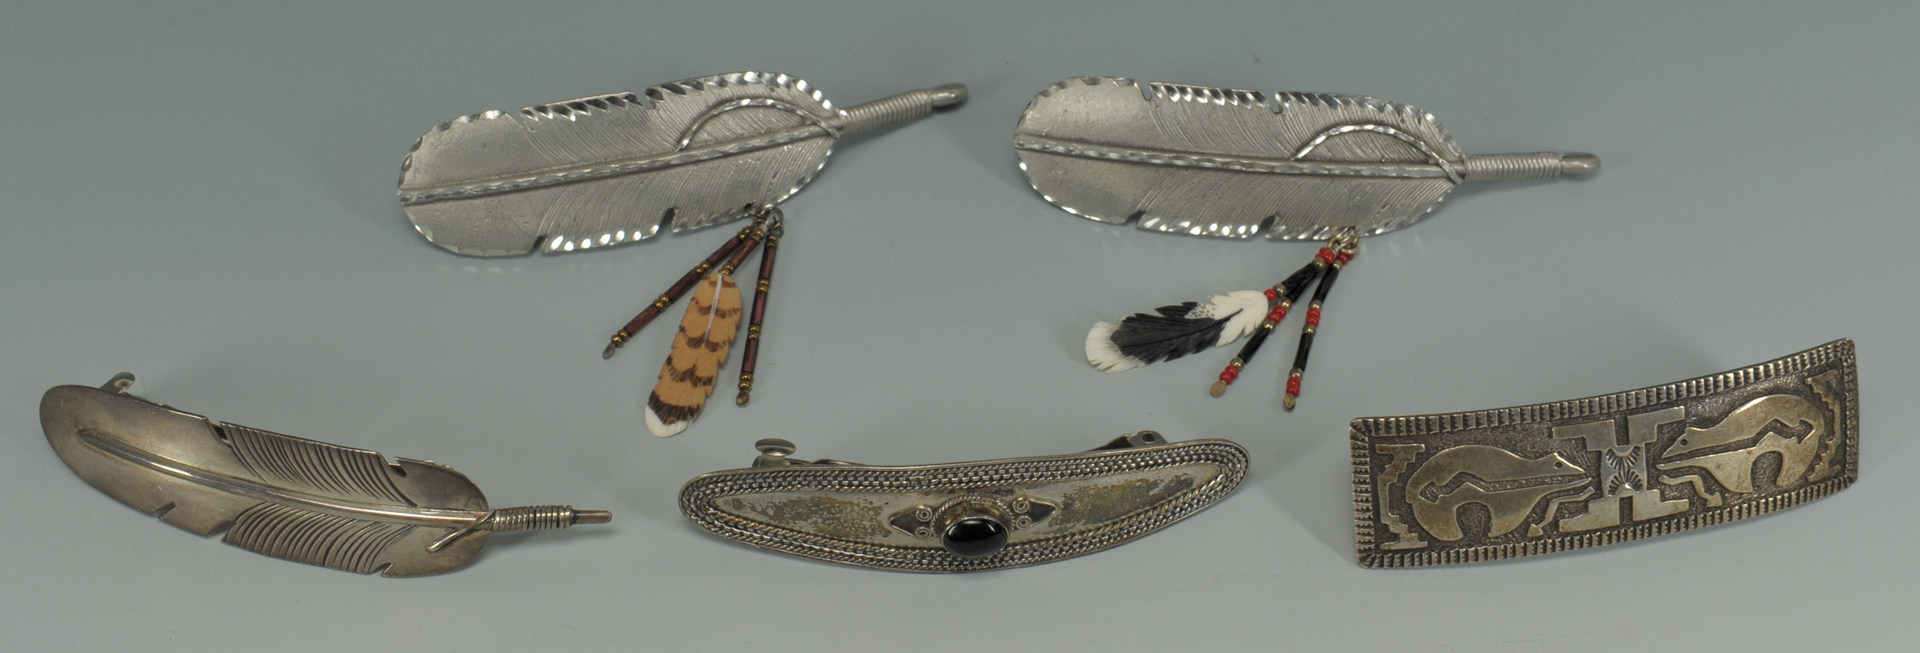 Lot 385: Native American Silver Bracelets & Hair Clips, 8 p